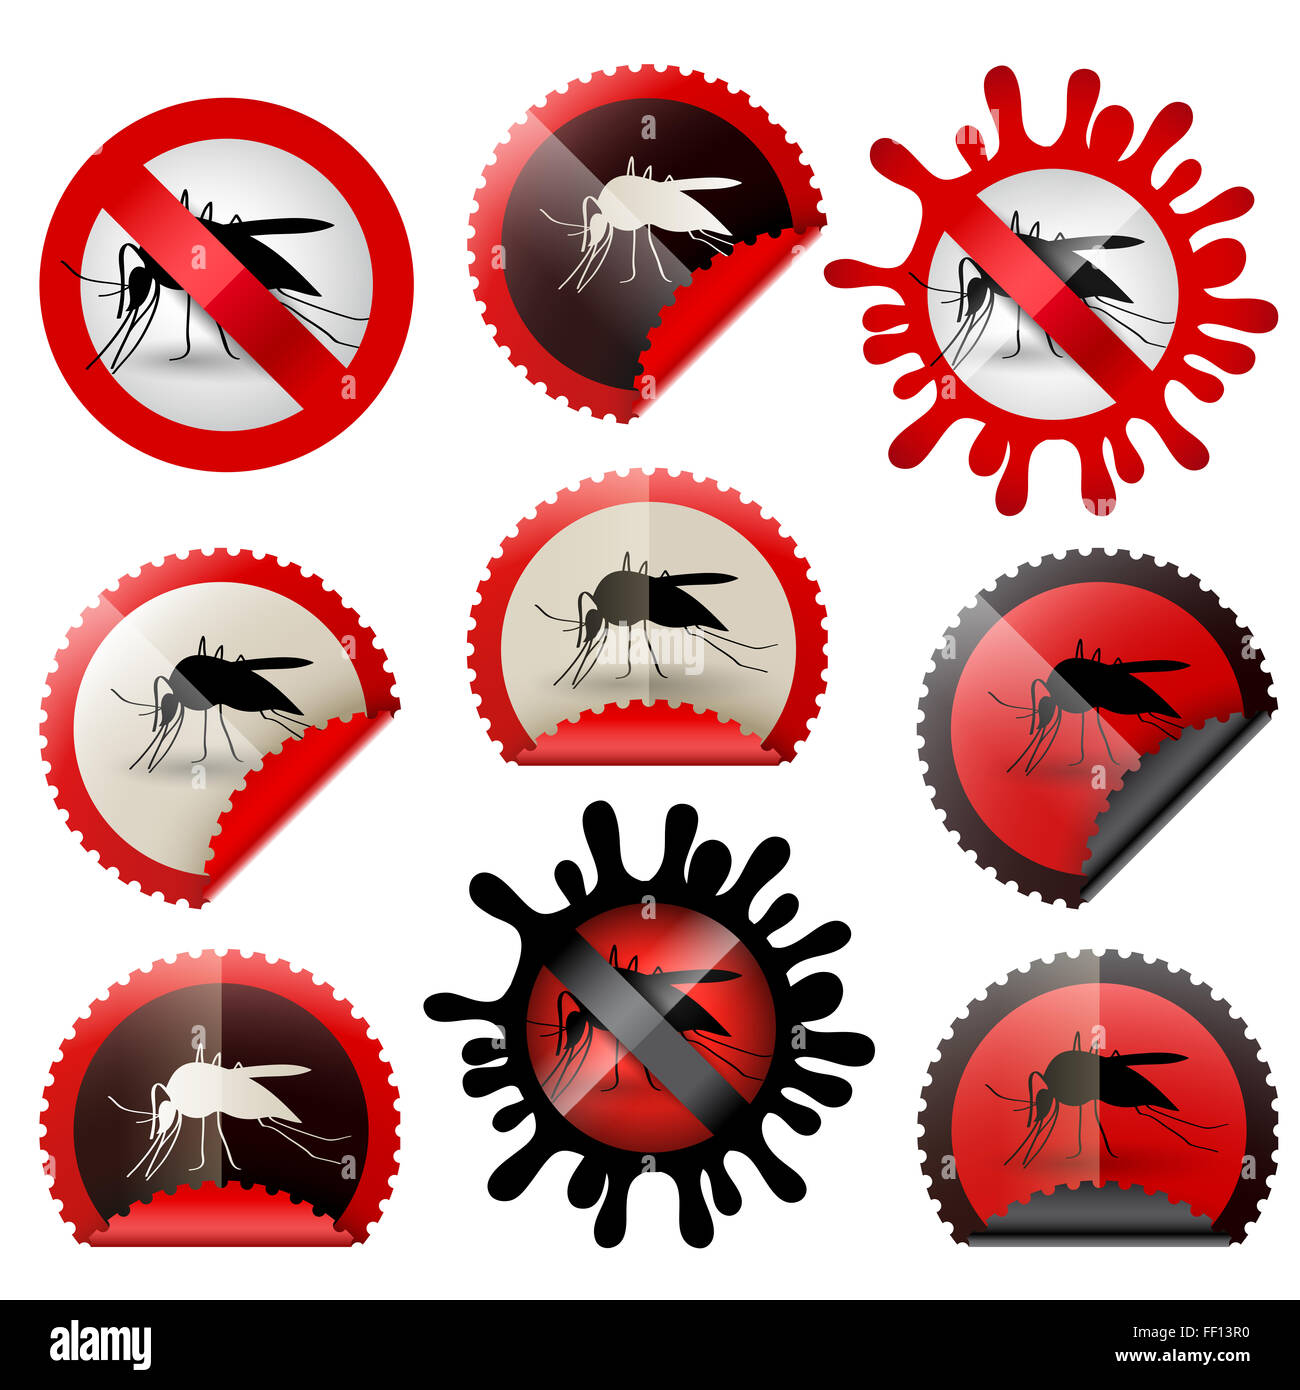 infected mosquitoe icon awareness isolated set in stamp shape, with colors and shapes to choose - Stock Image